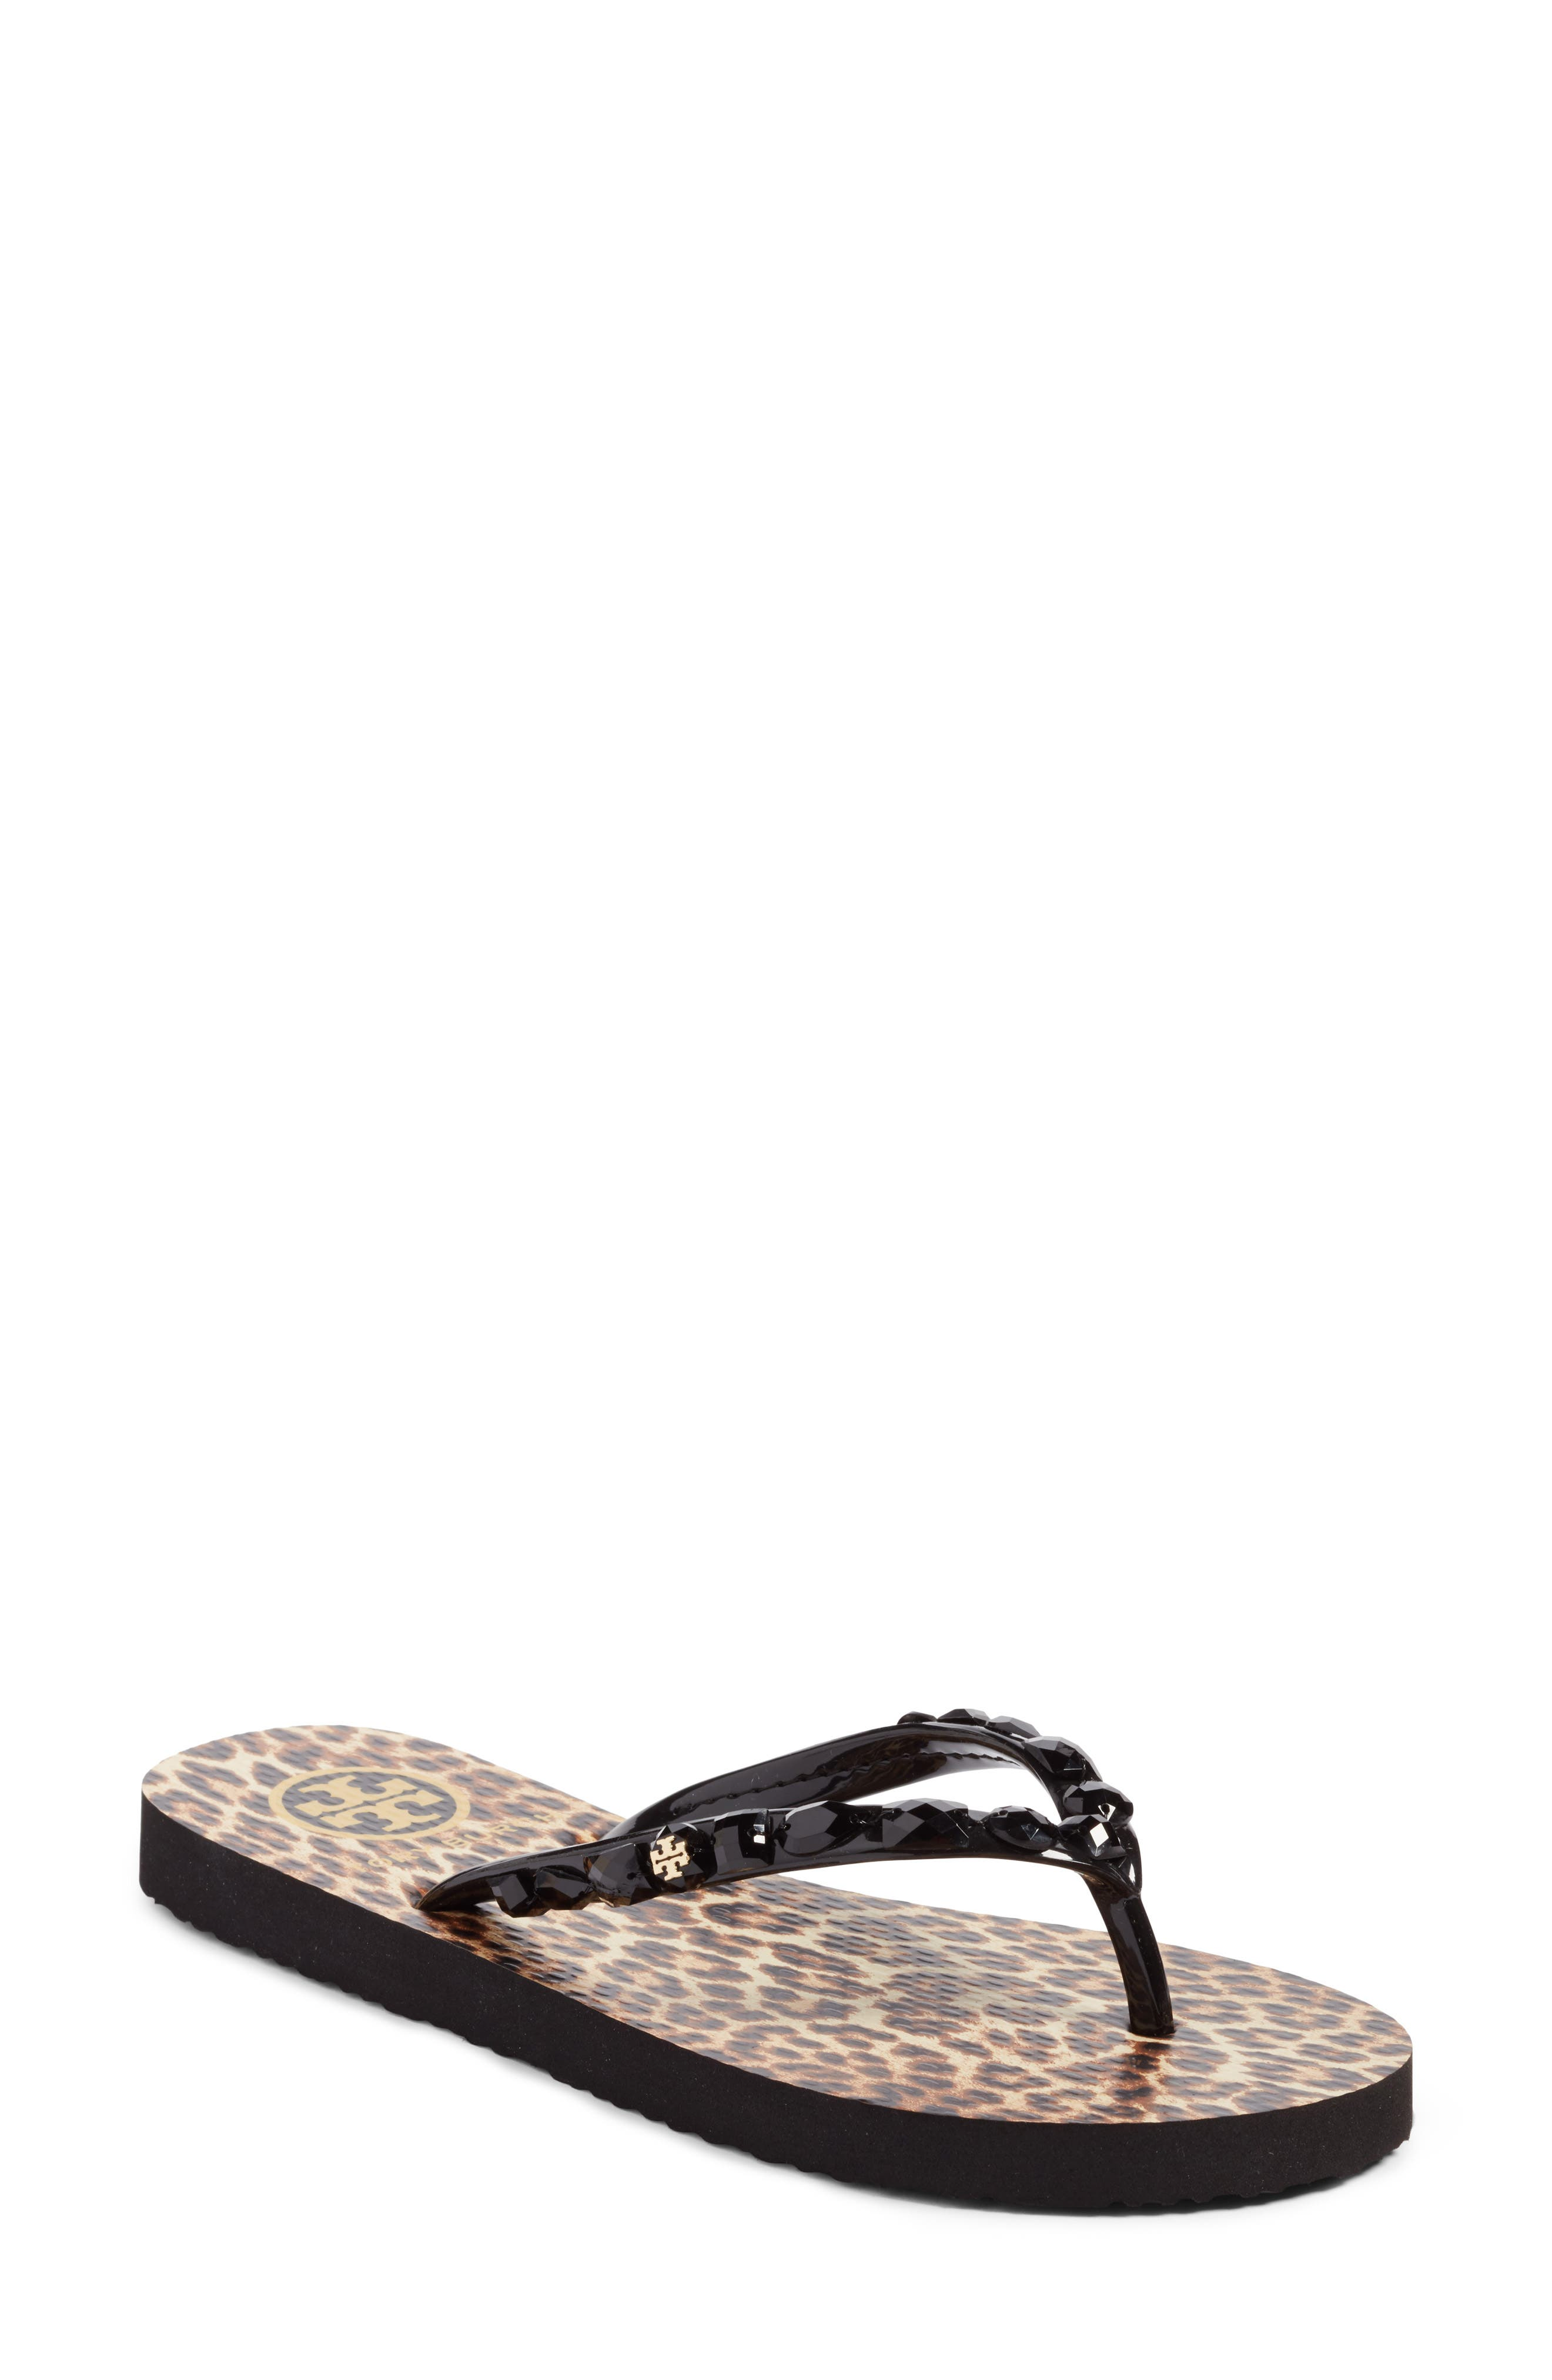 Tory Burch Embellished Flip-Flop (Women)